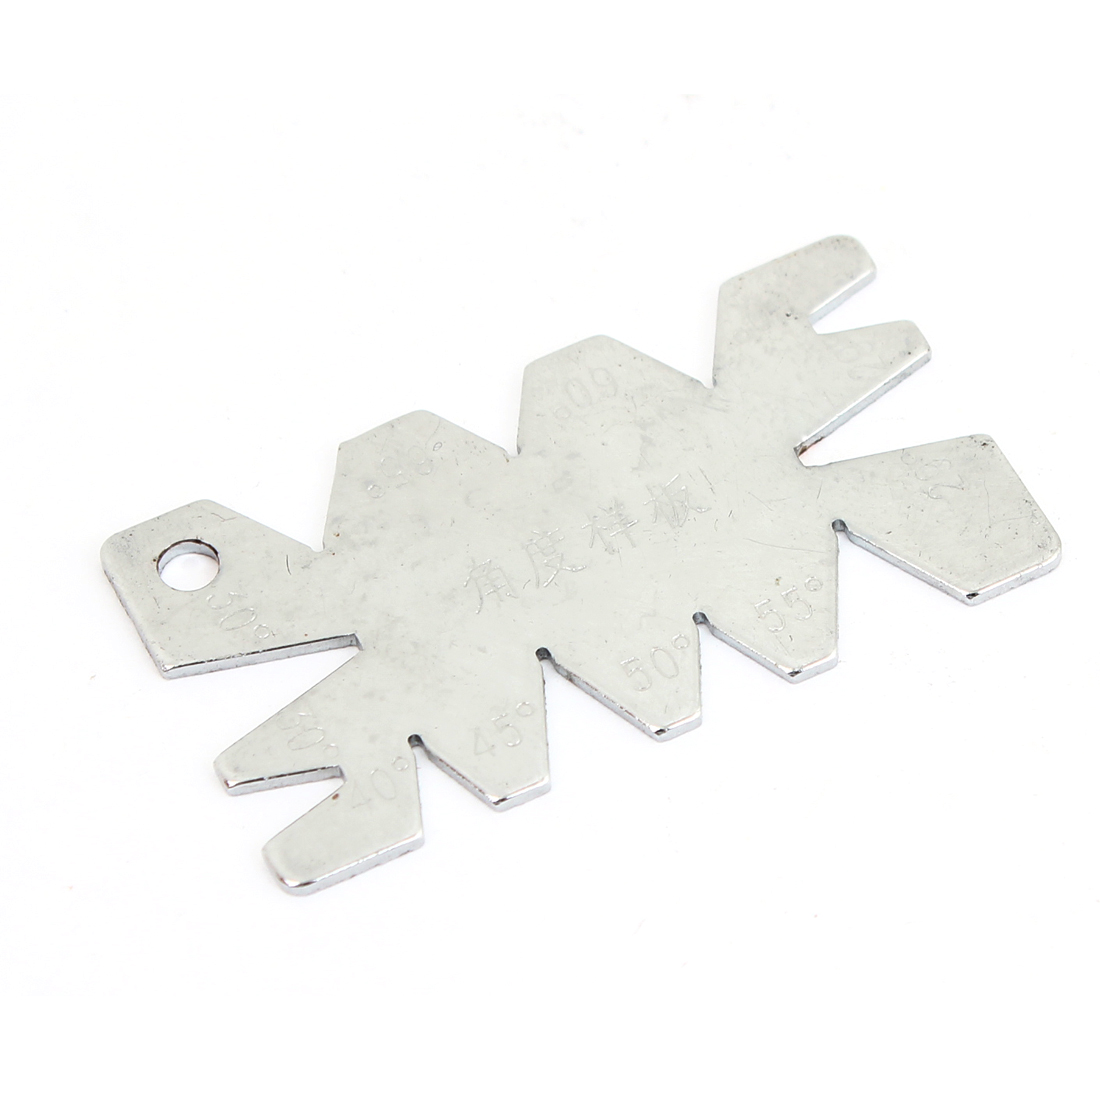 Screw Cut Angle Measuring Thread Cutting Gauge Silver Tone